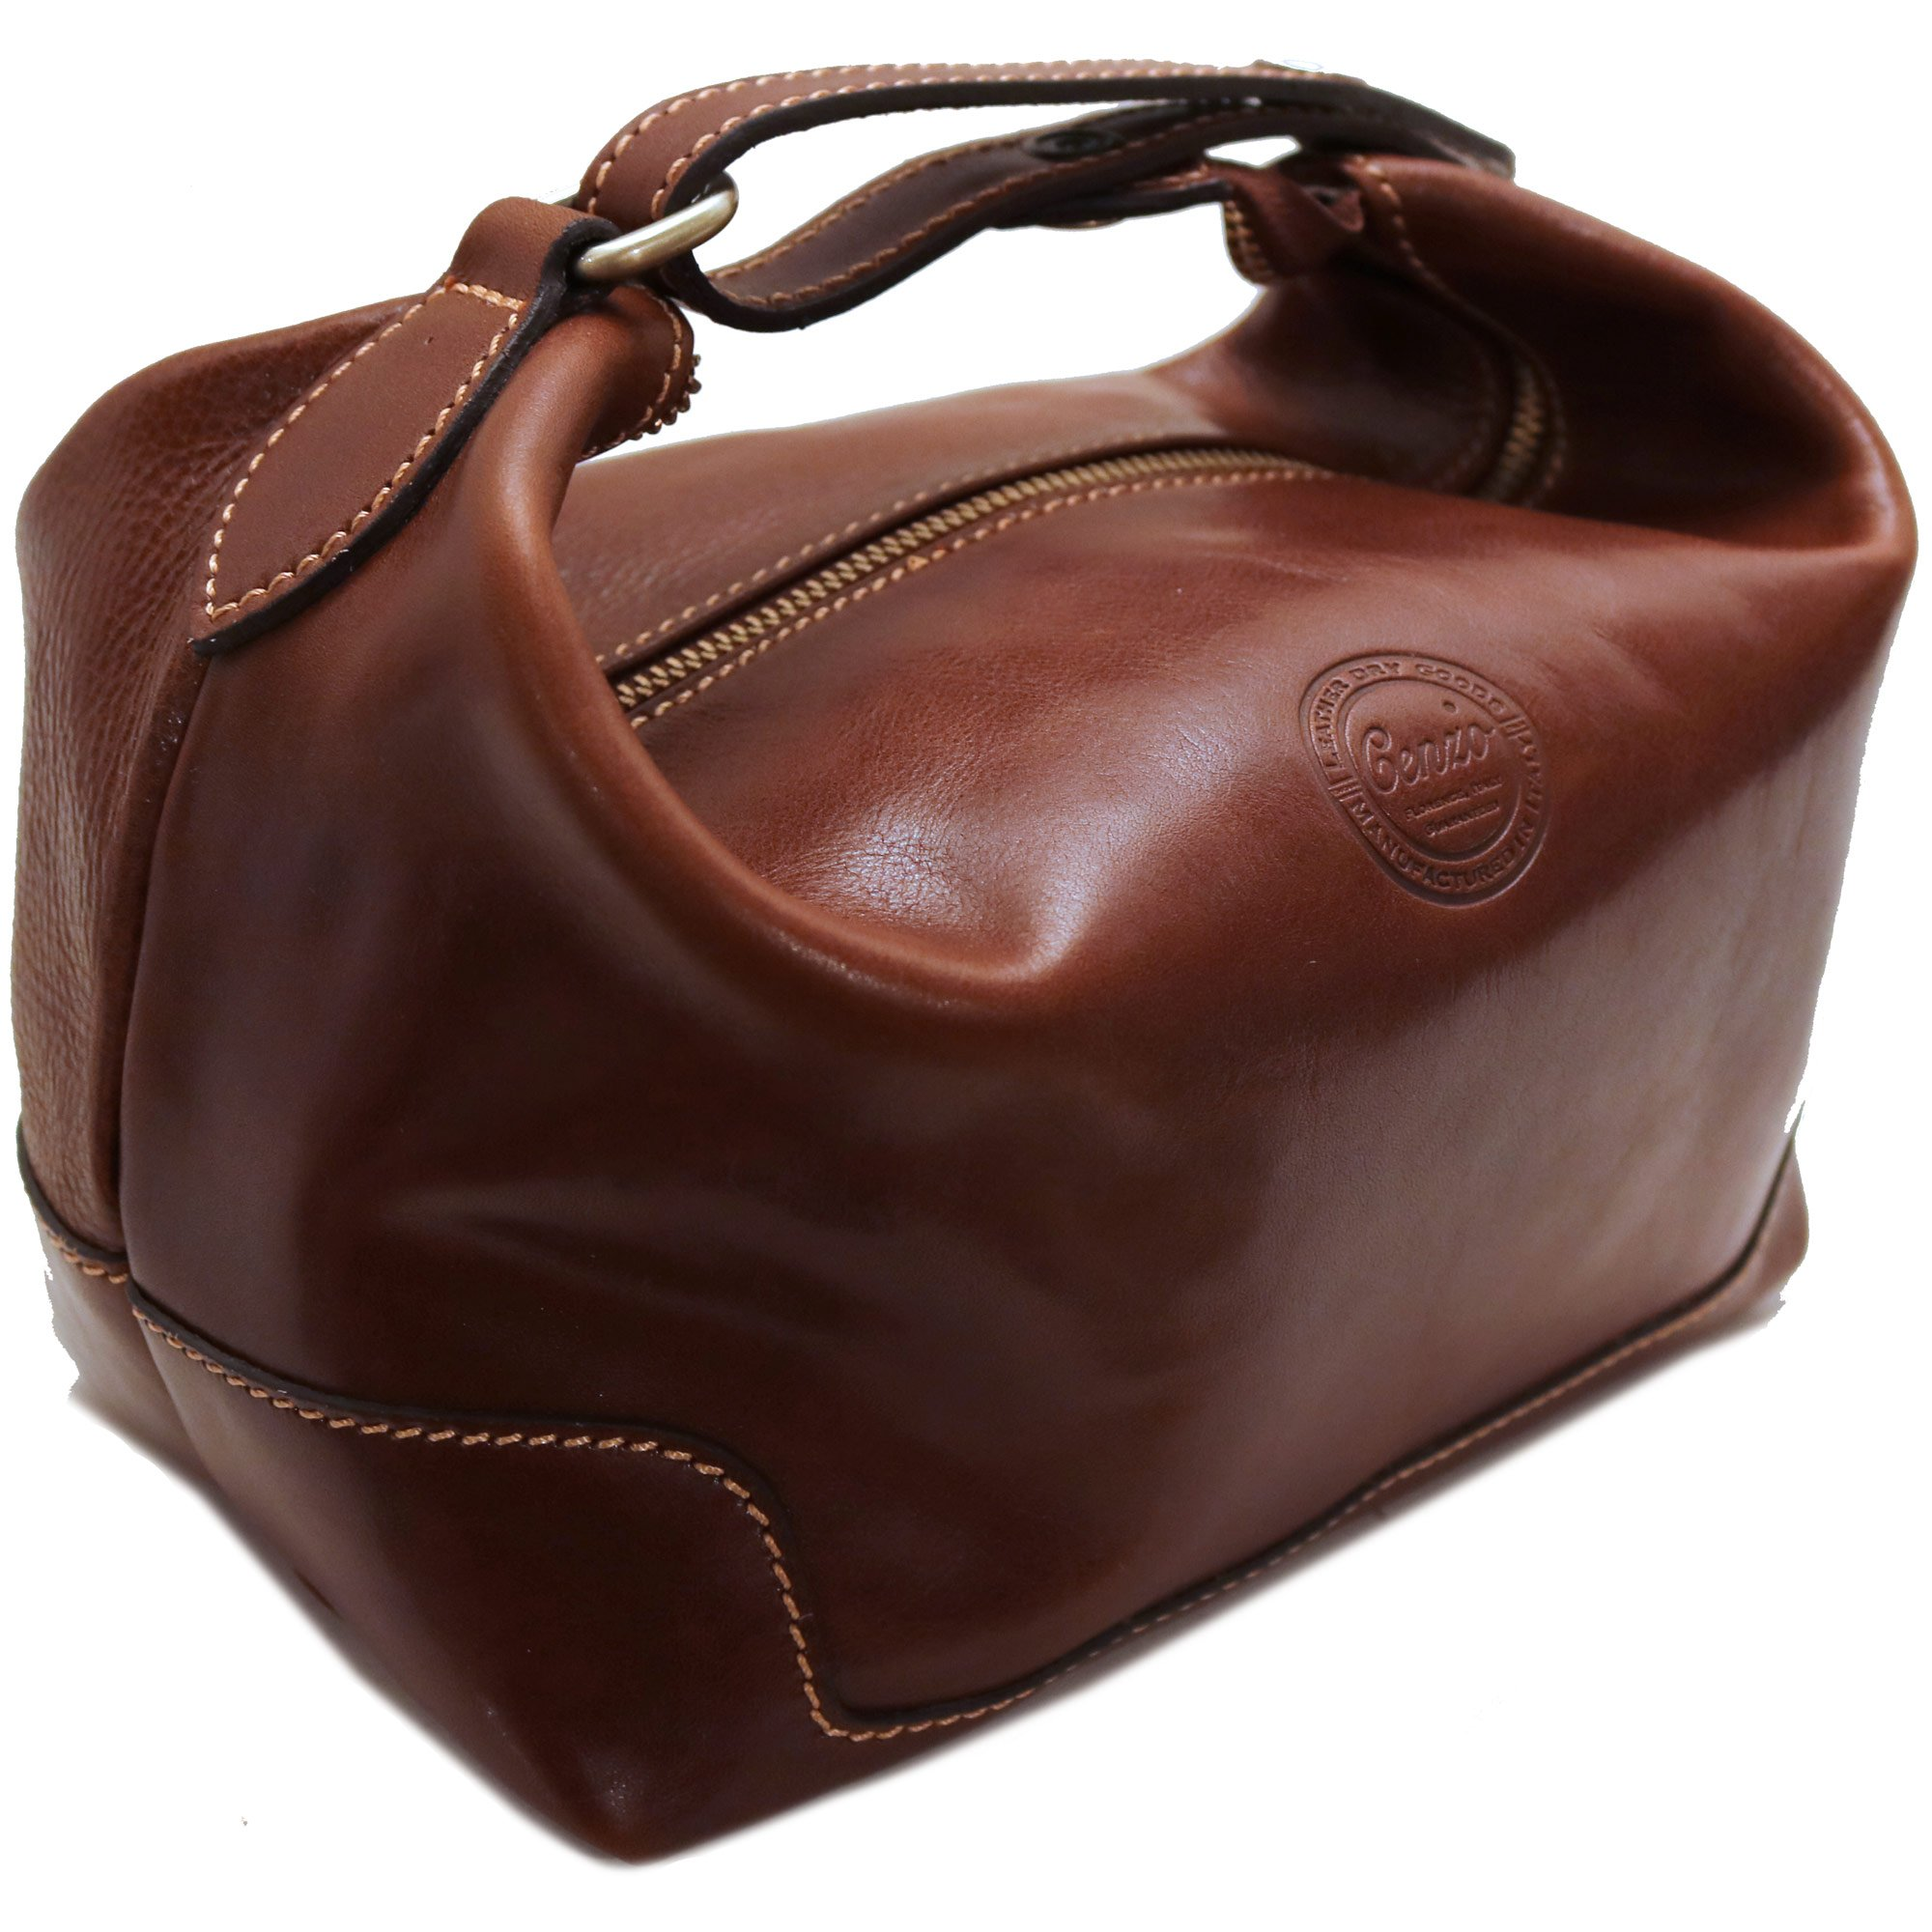 Cenzo Leather Travel Kit Toiletry Dopp Bag in Brown by Cenzo